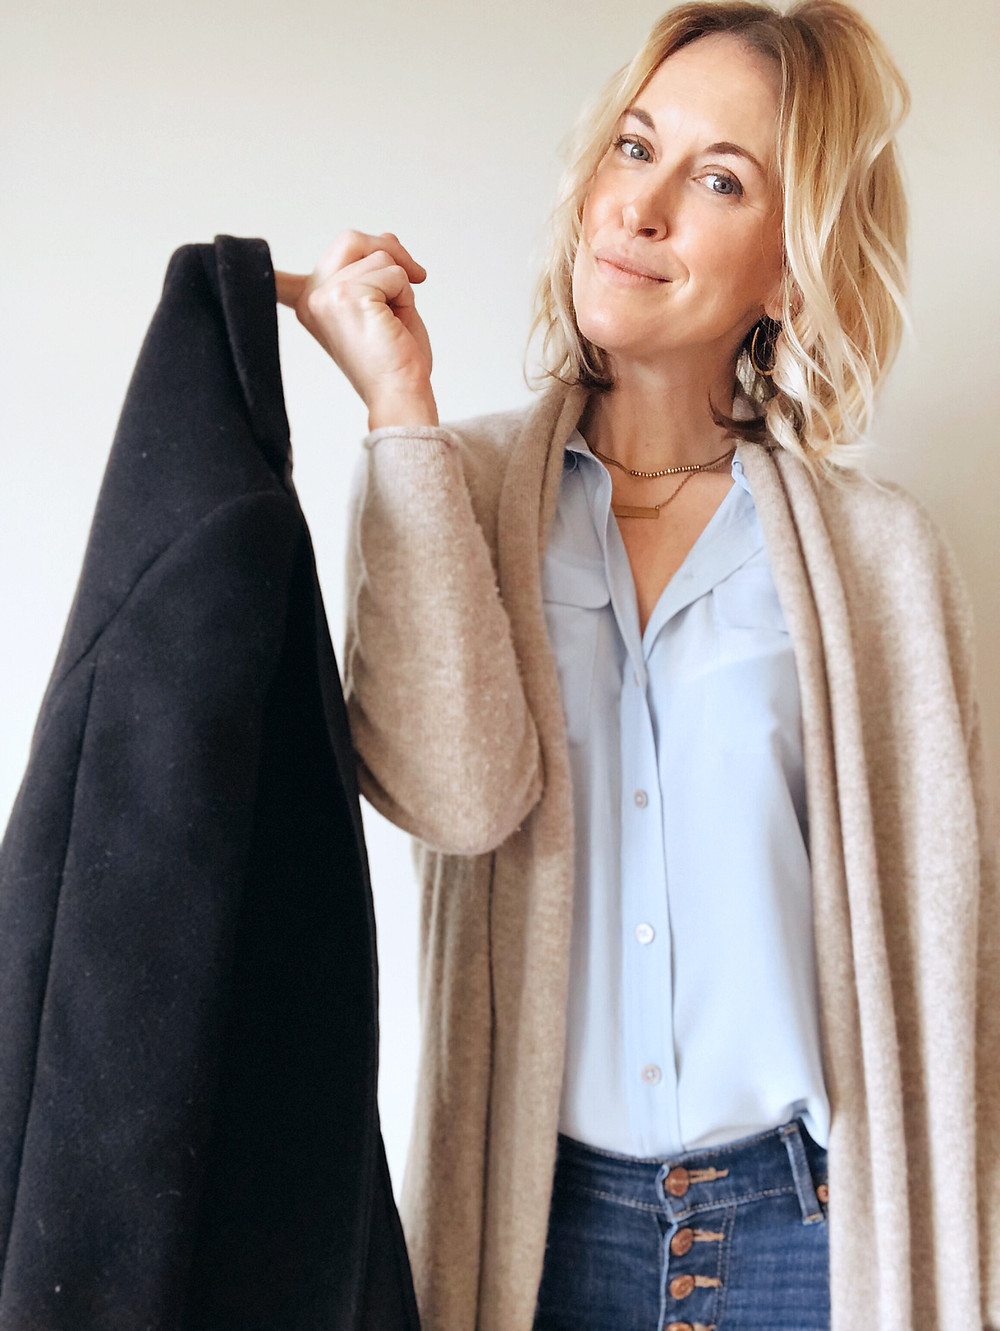 Black blazer dangles off finger of woman wearing cardigan and blue blouse.